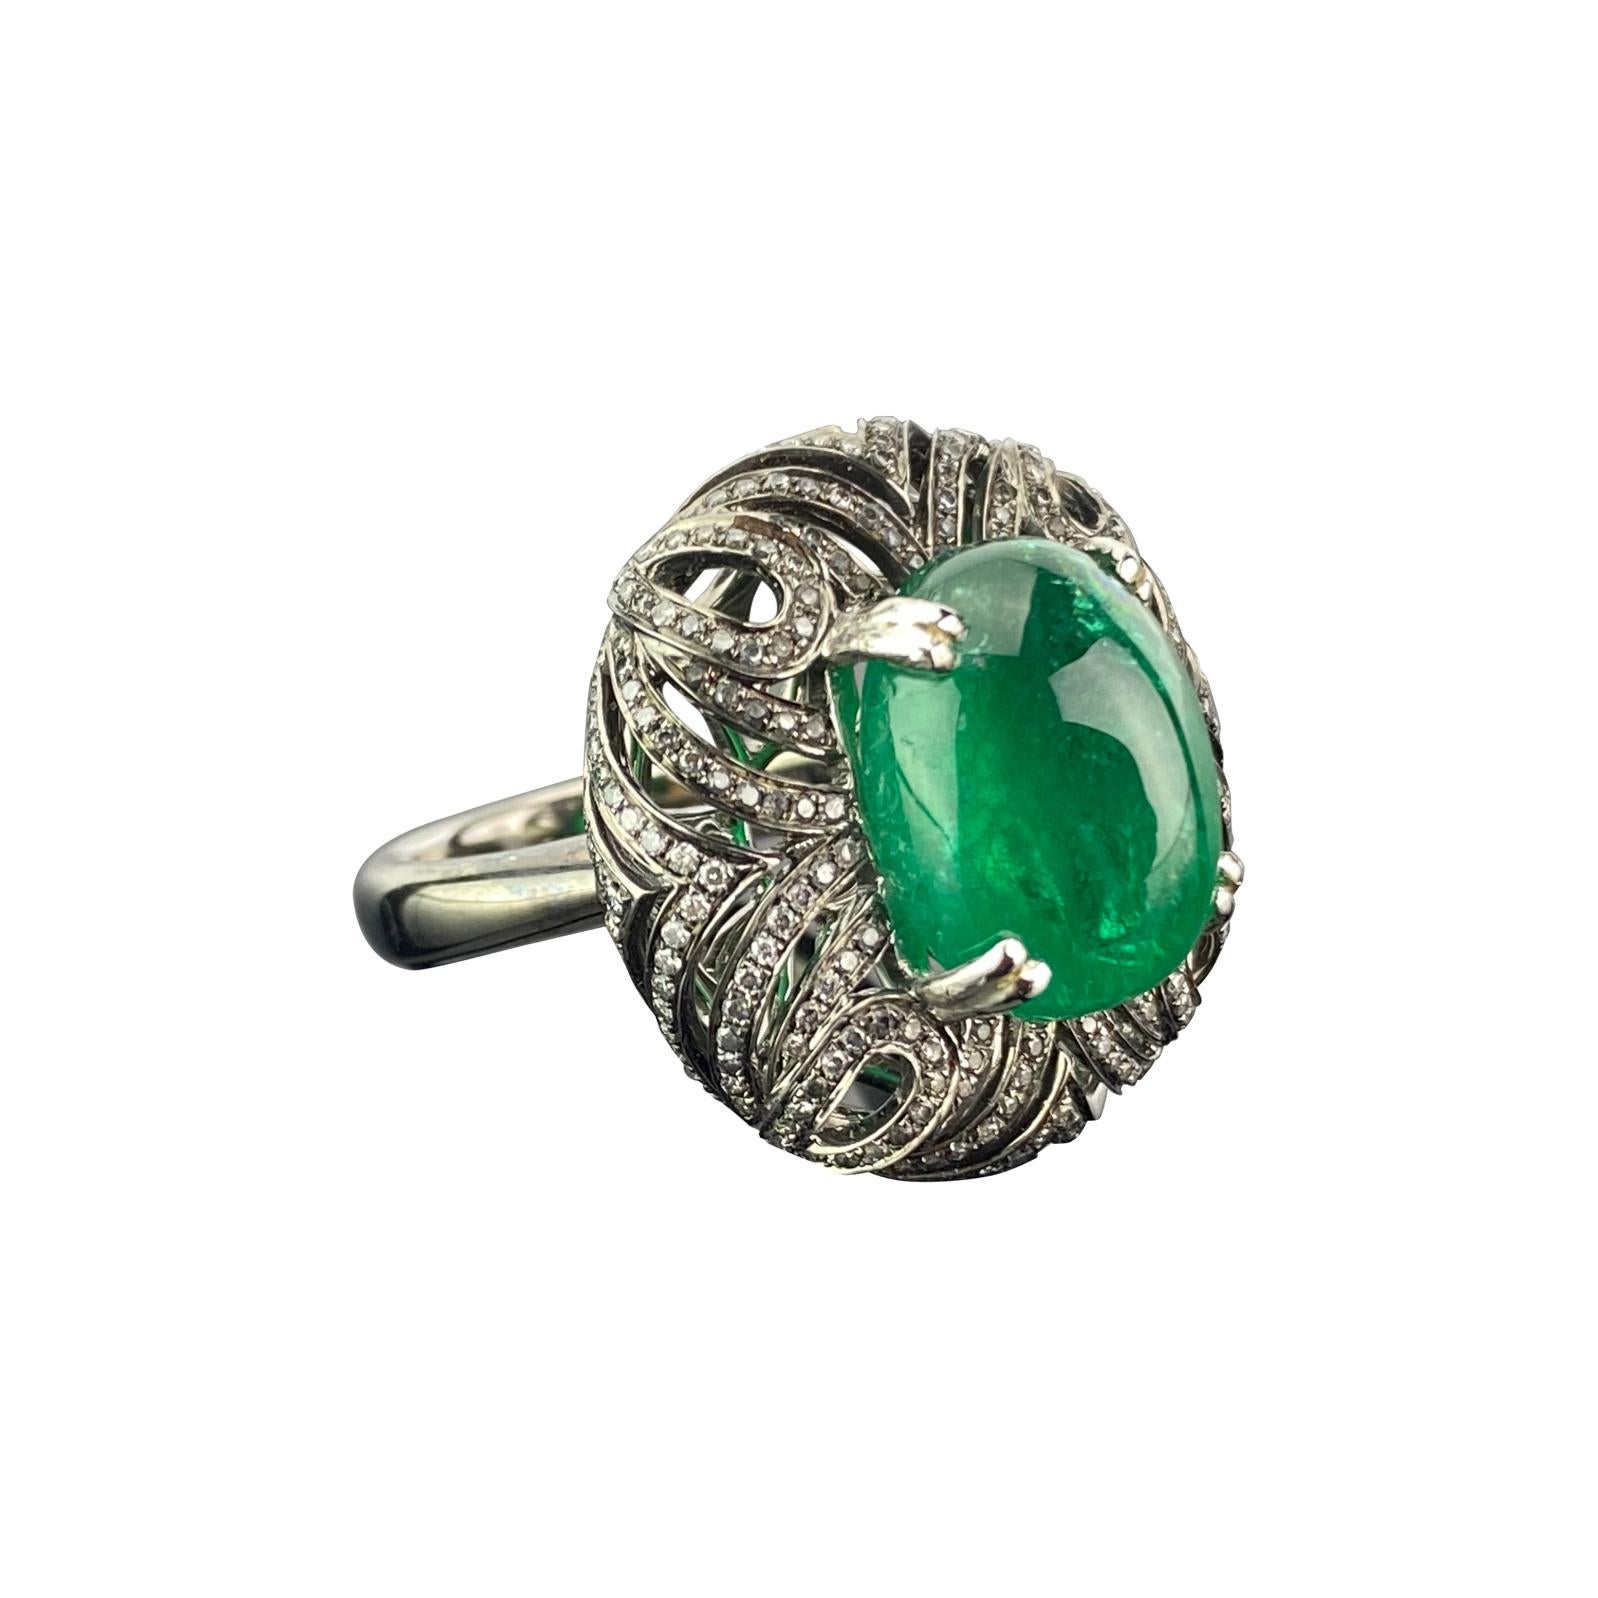 10.80 Carat Emerald Cabochon and Diamond 18K Gold Cocktail Ring